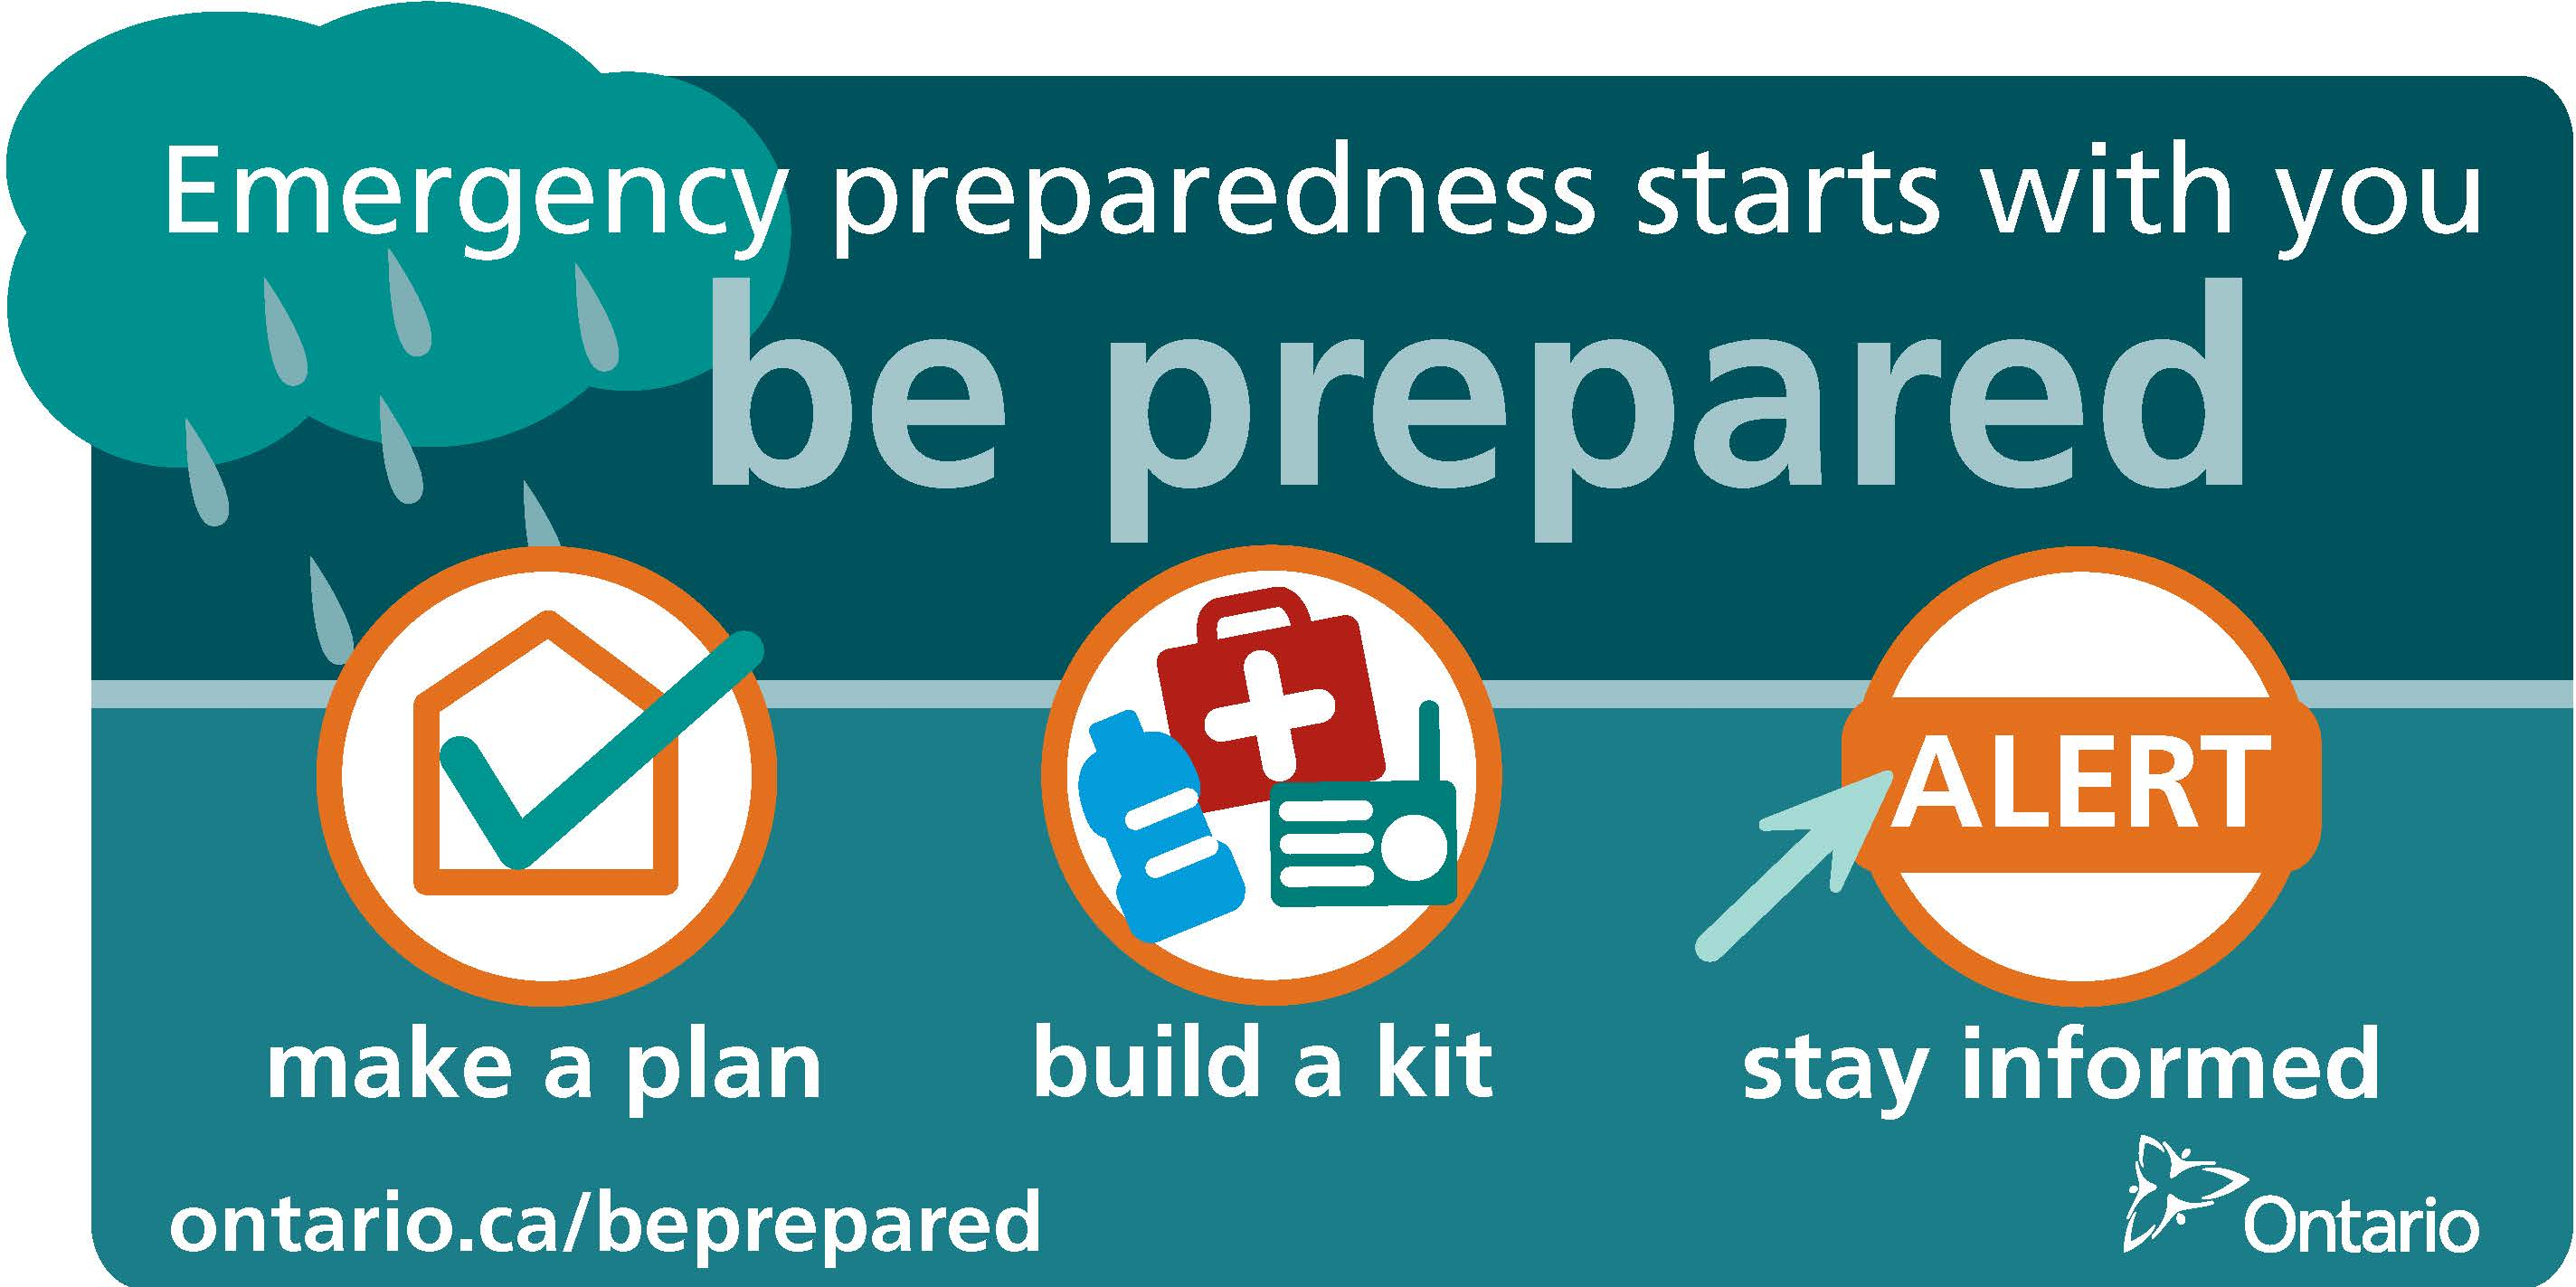 emergency preparedness banner saying make a plan, build a kit and stay informed